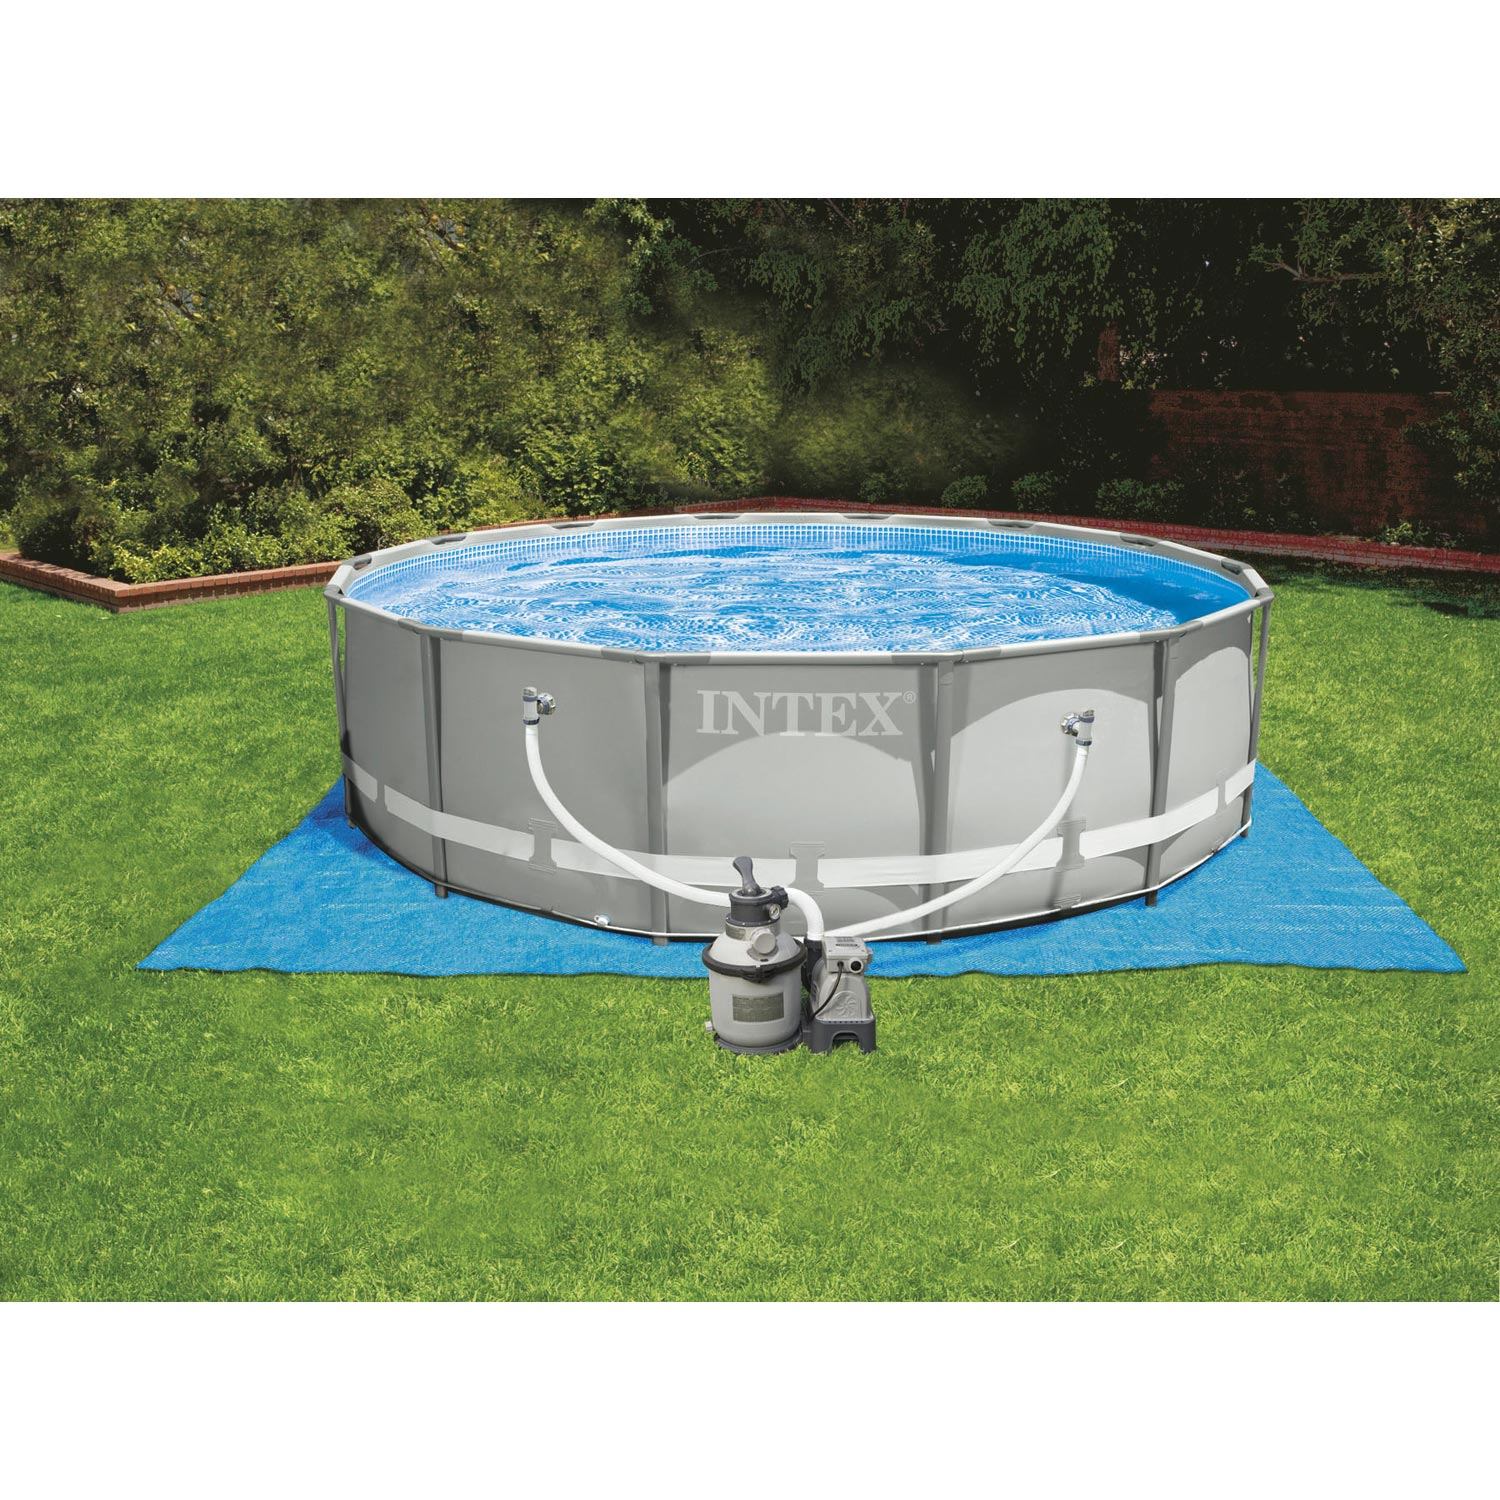 Piscine hors sol autoportante tubulaire ultra frame intex for Piscine tubulaire ovale intex